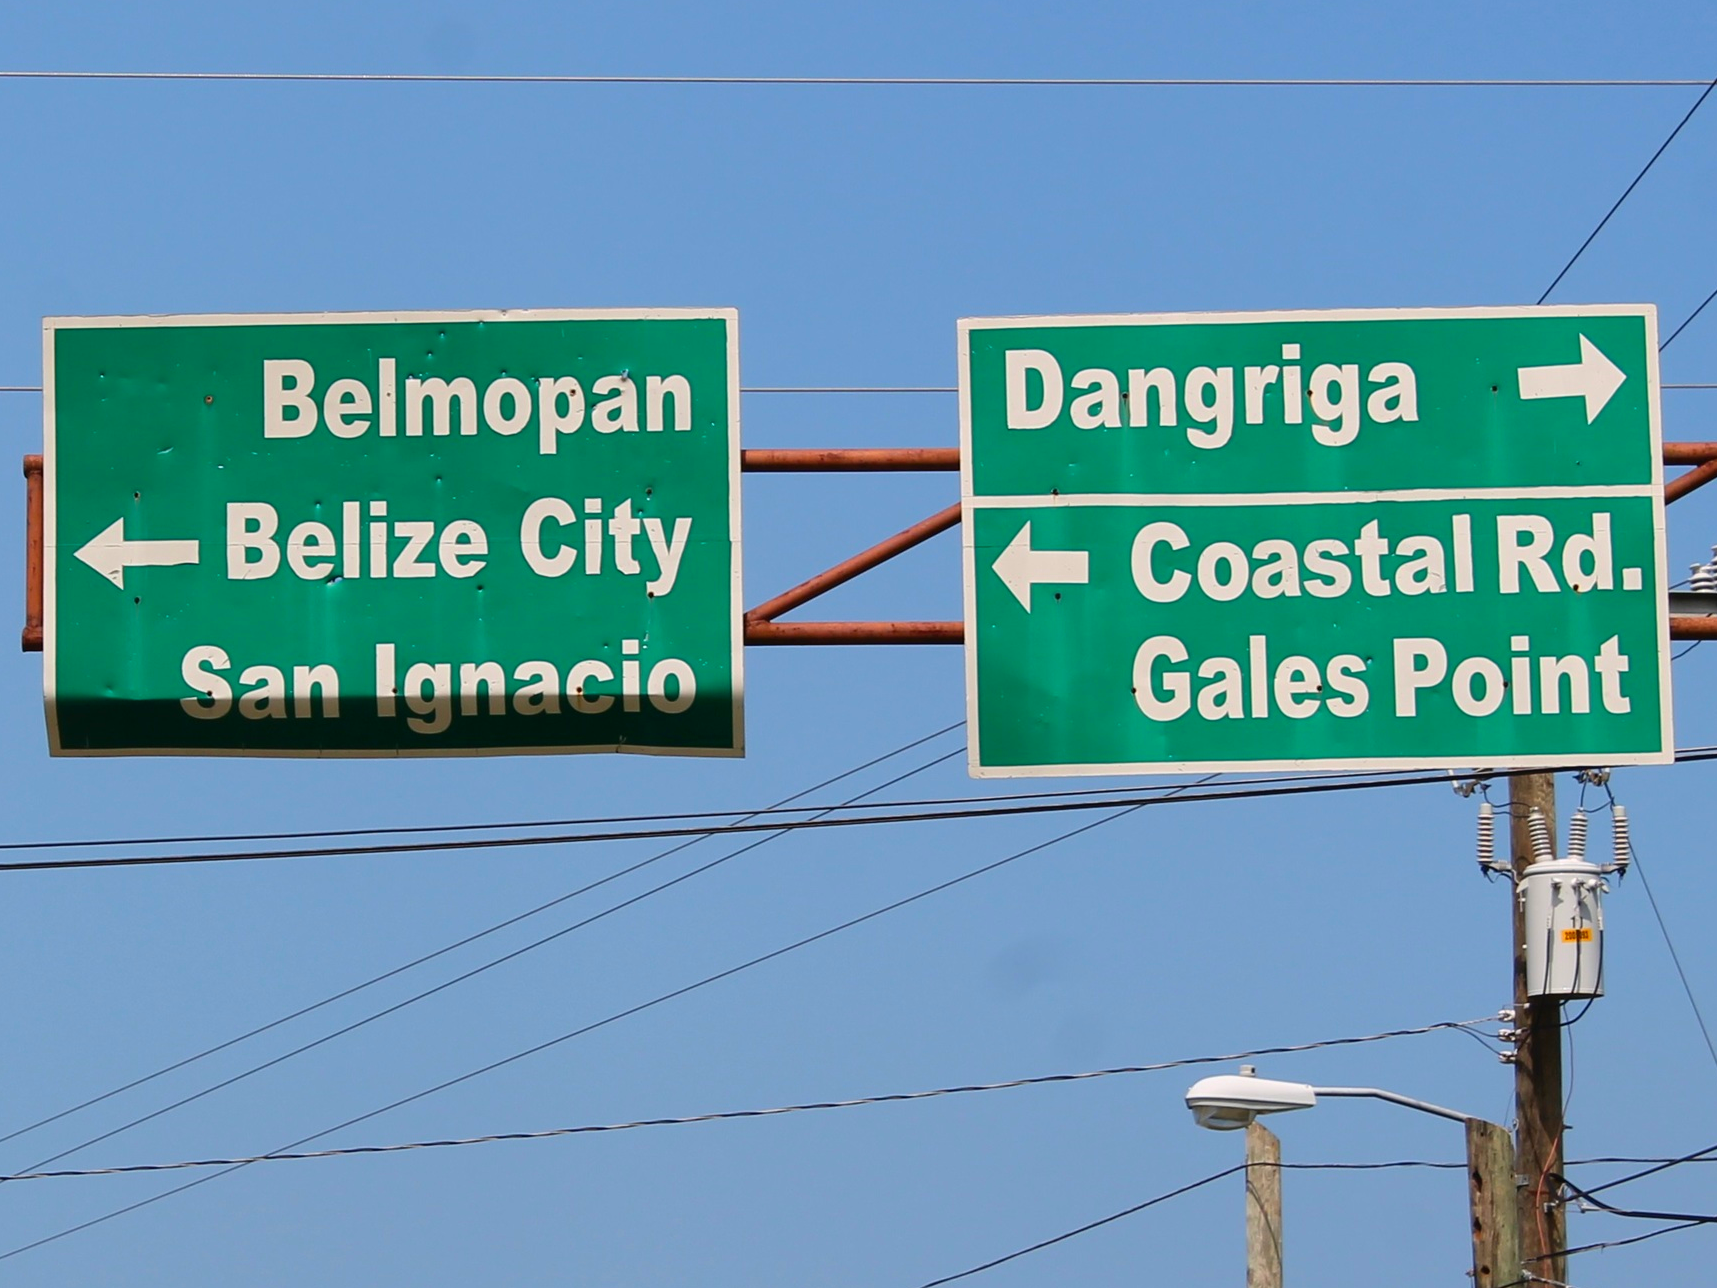 Every major highway intersection is marked by signs like these